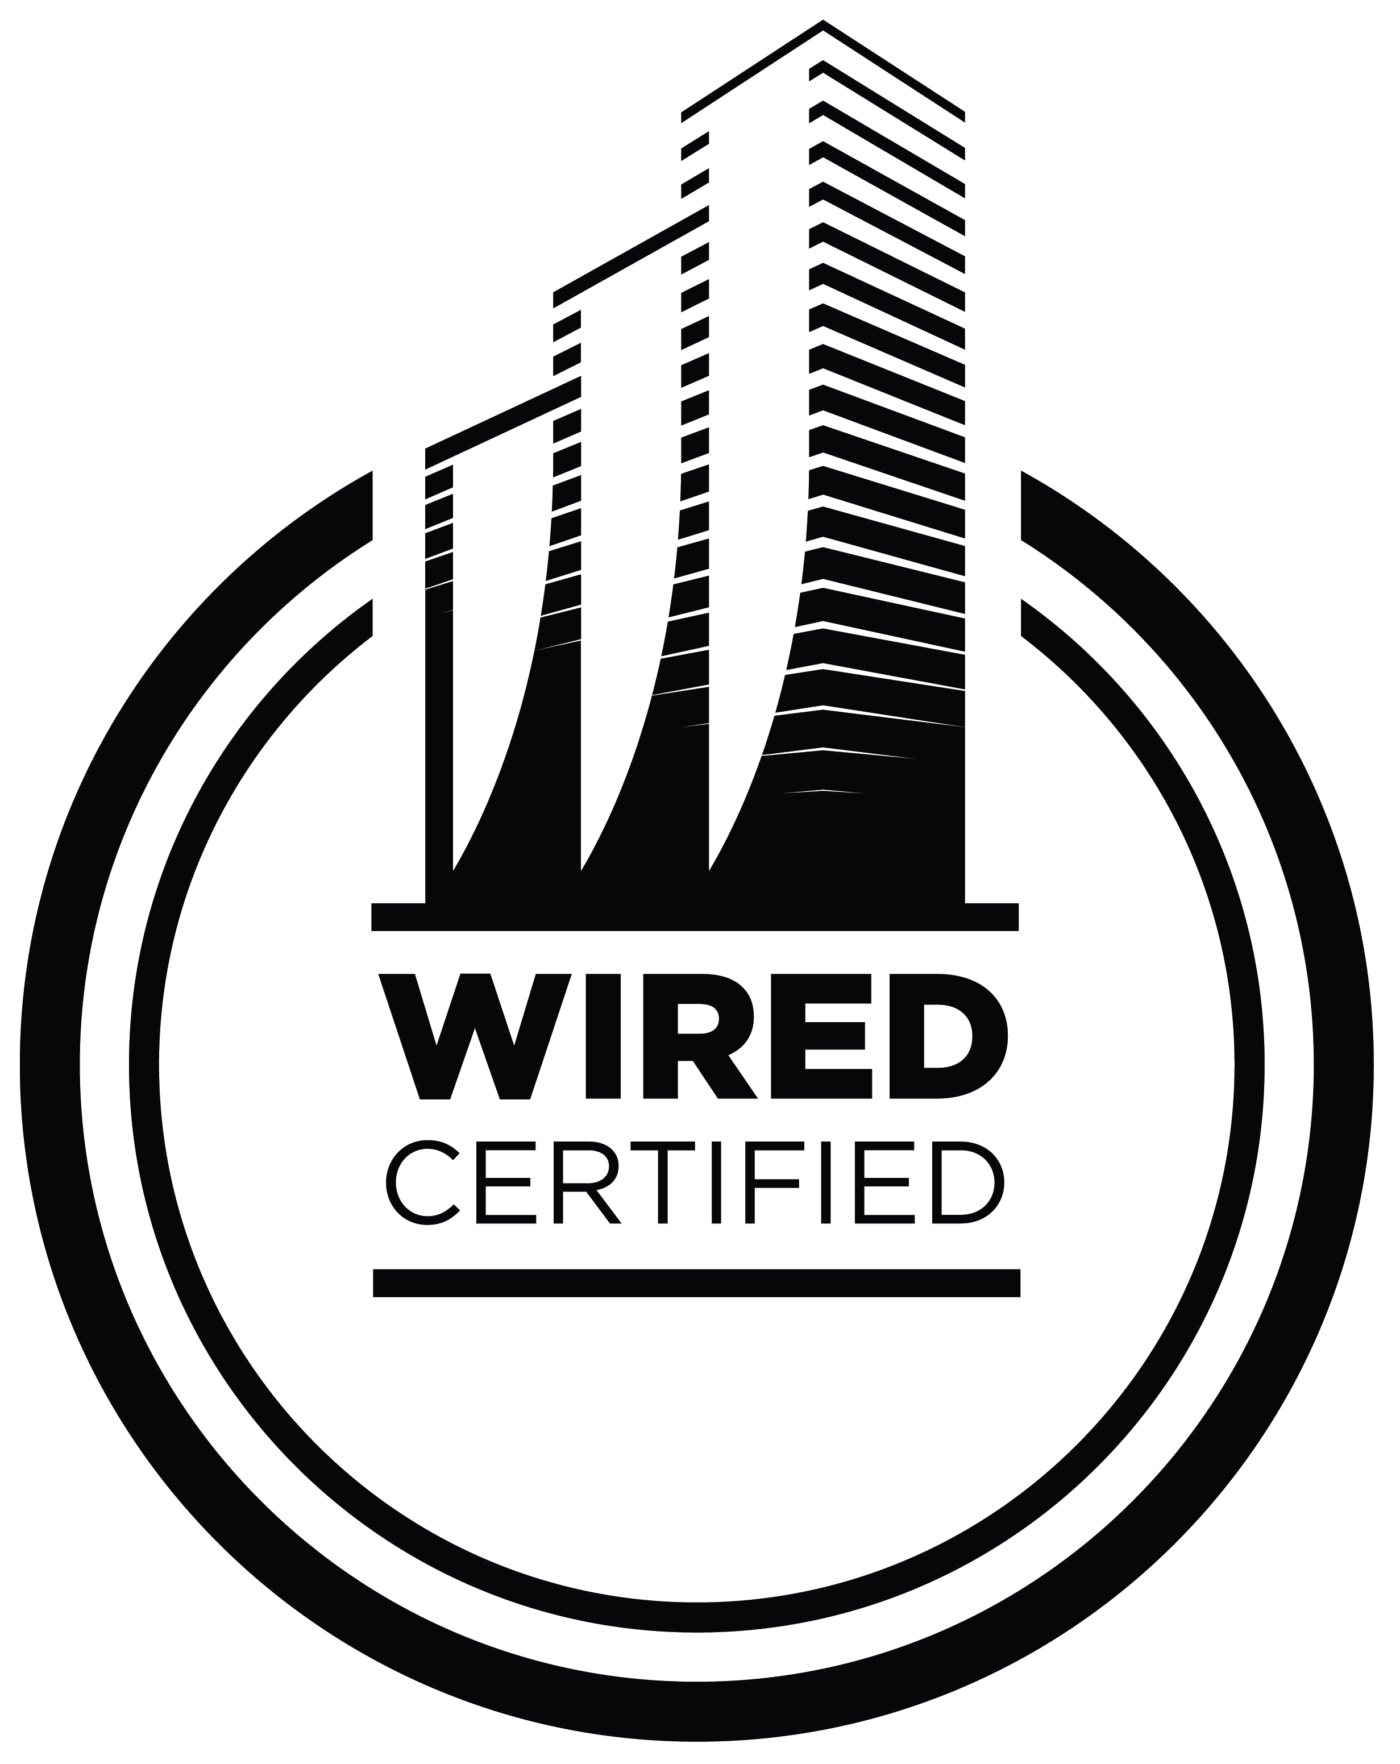 Wired Certified Image